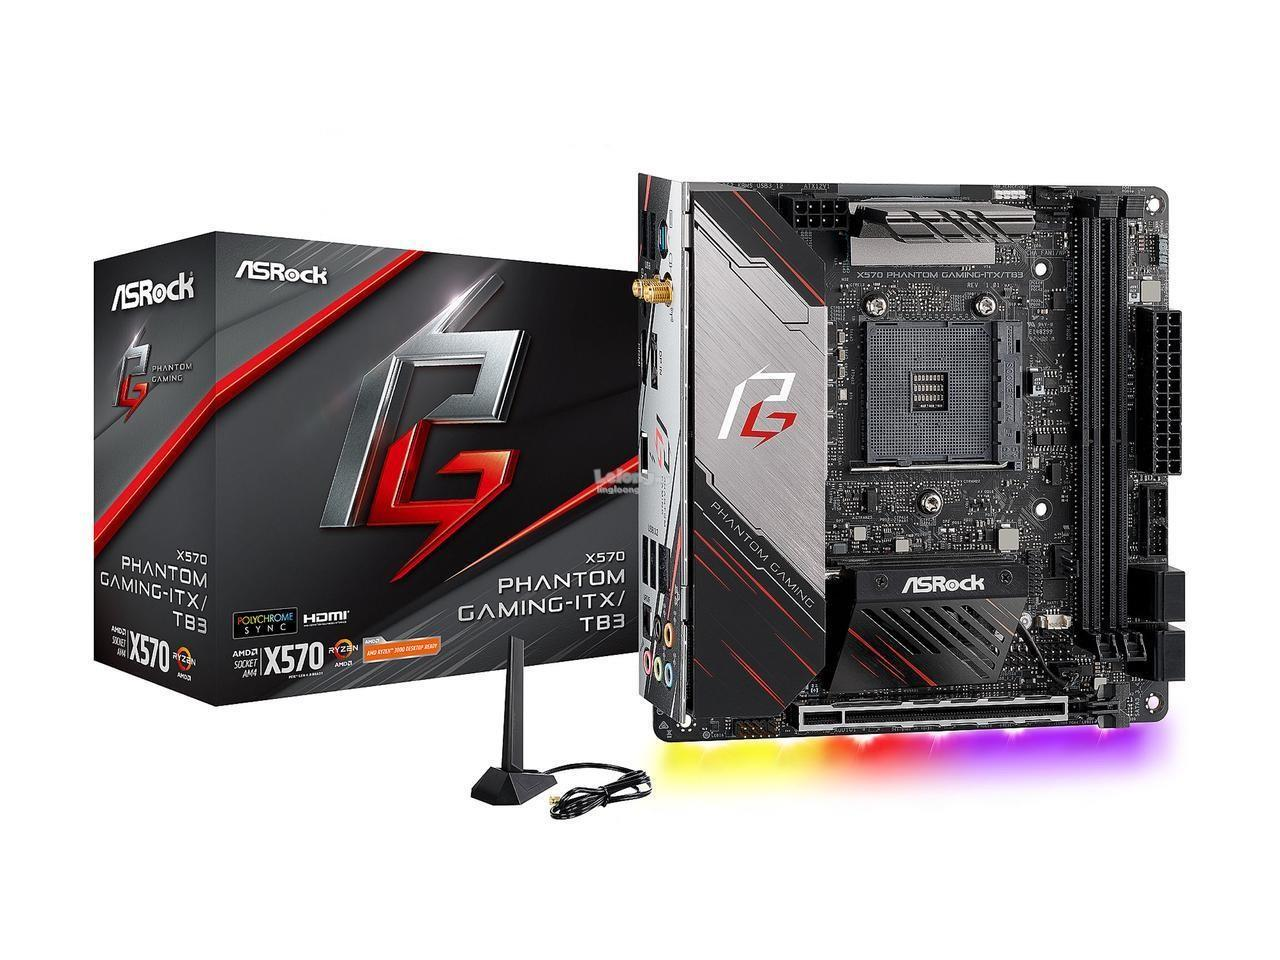 # ASROCK X570 Phantom Gaming-ITX/TB3 Motherboard # AMD AM4